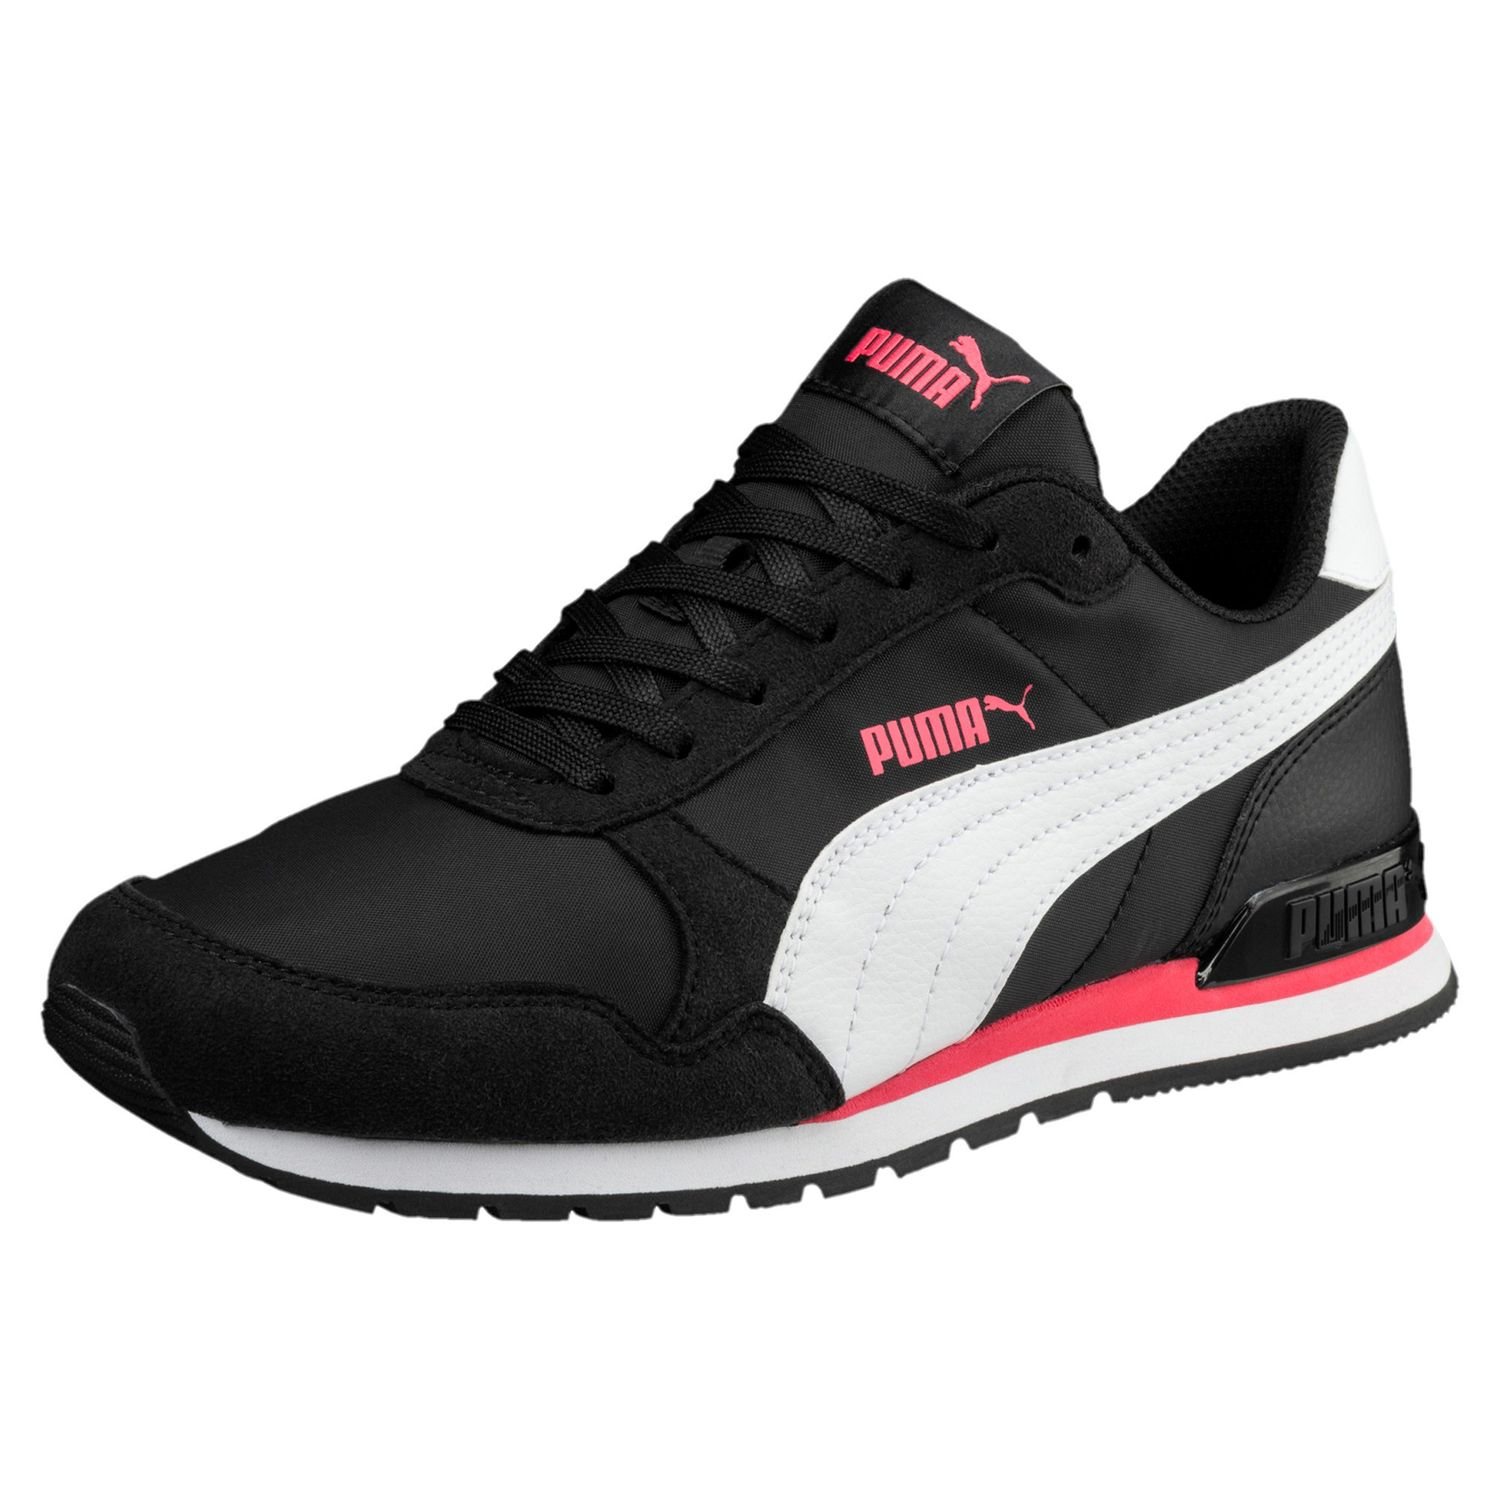 Details about Puma Ladies St Runner v2 Nl Women ´S Sneakers Trainers Low  Top 365278 Black